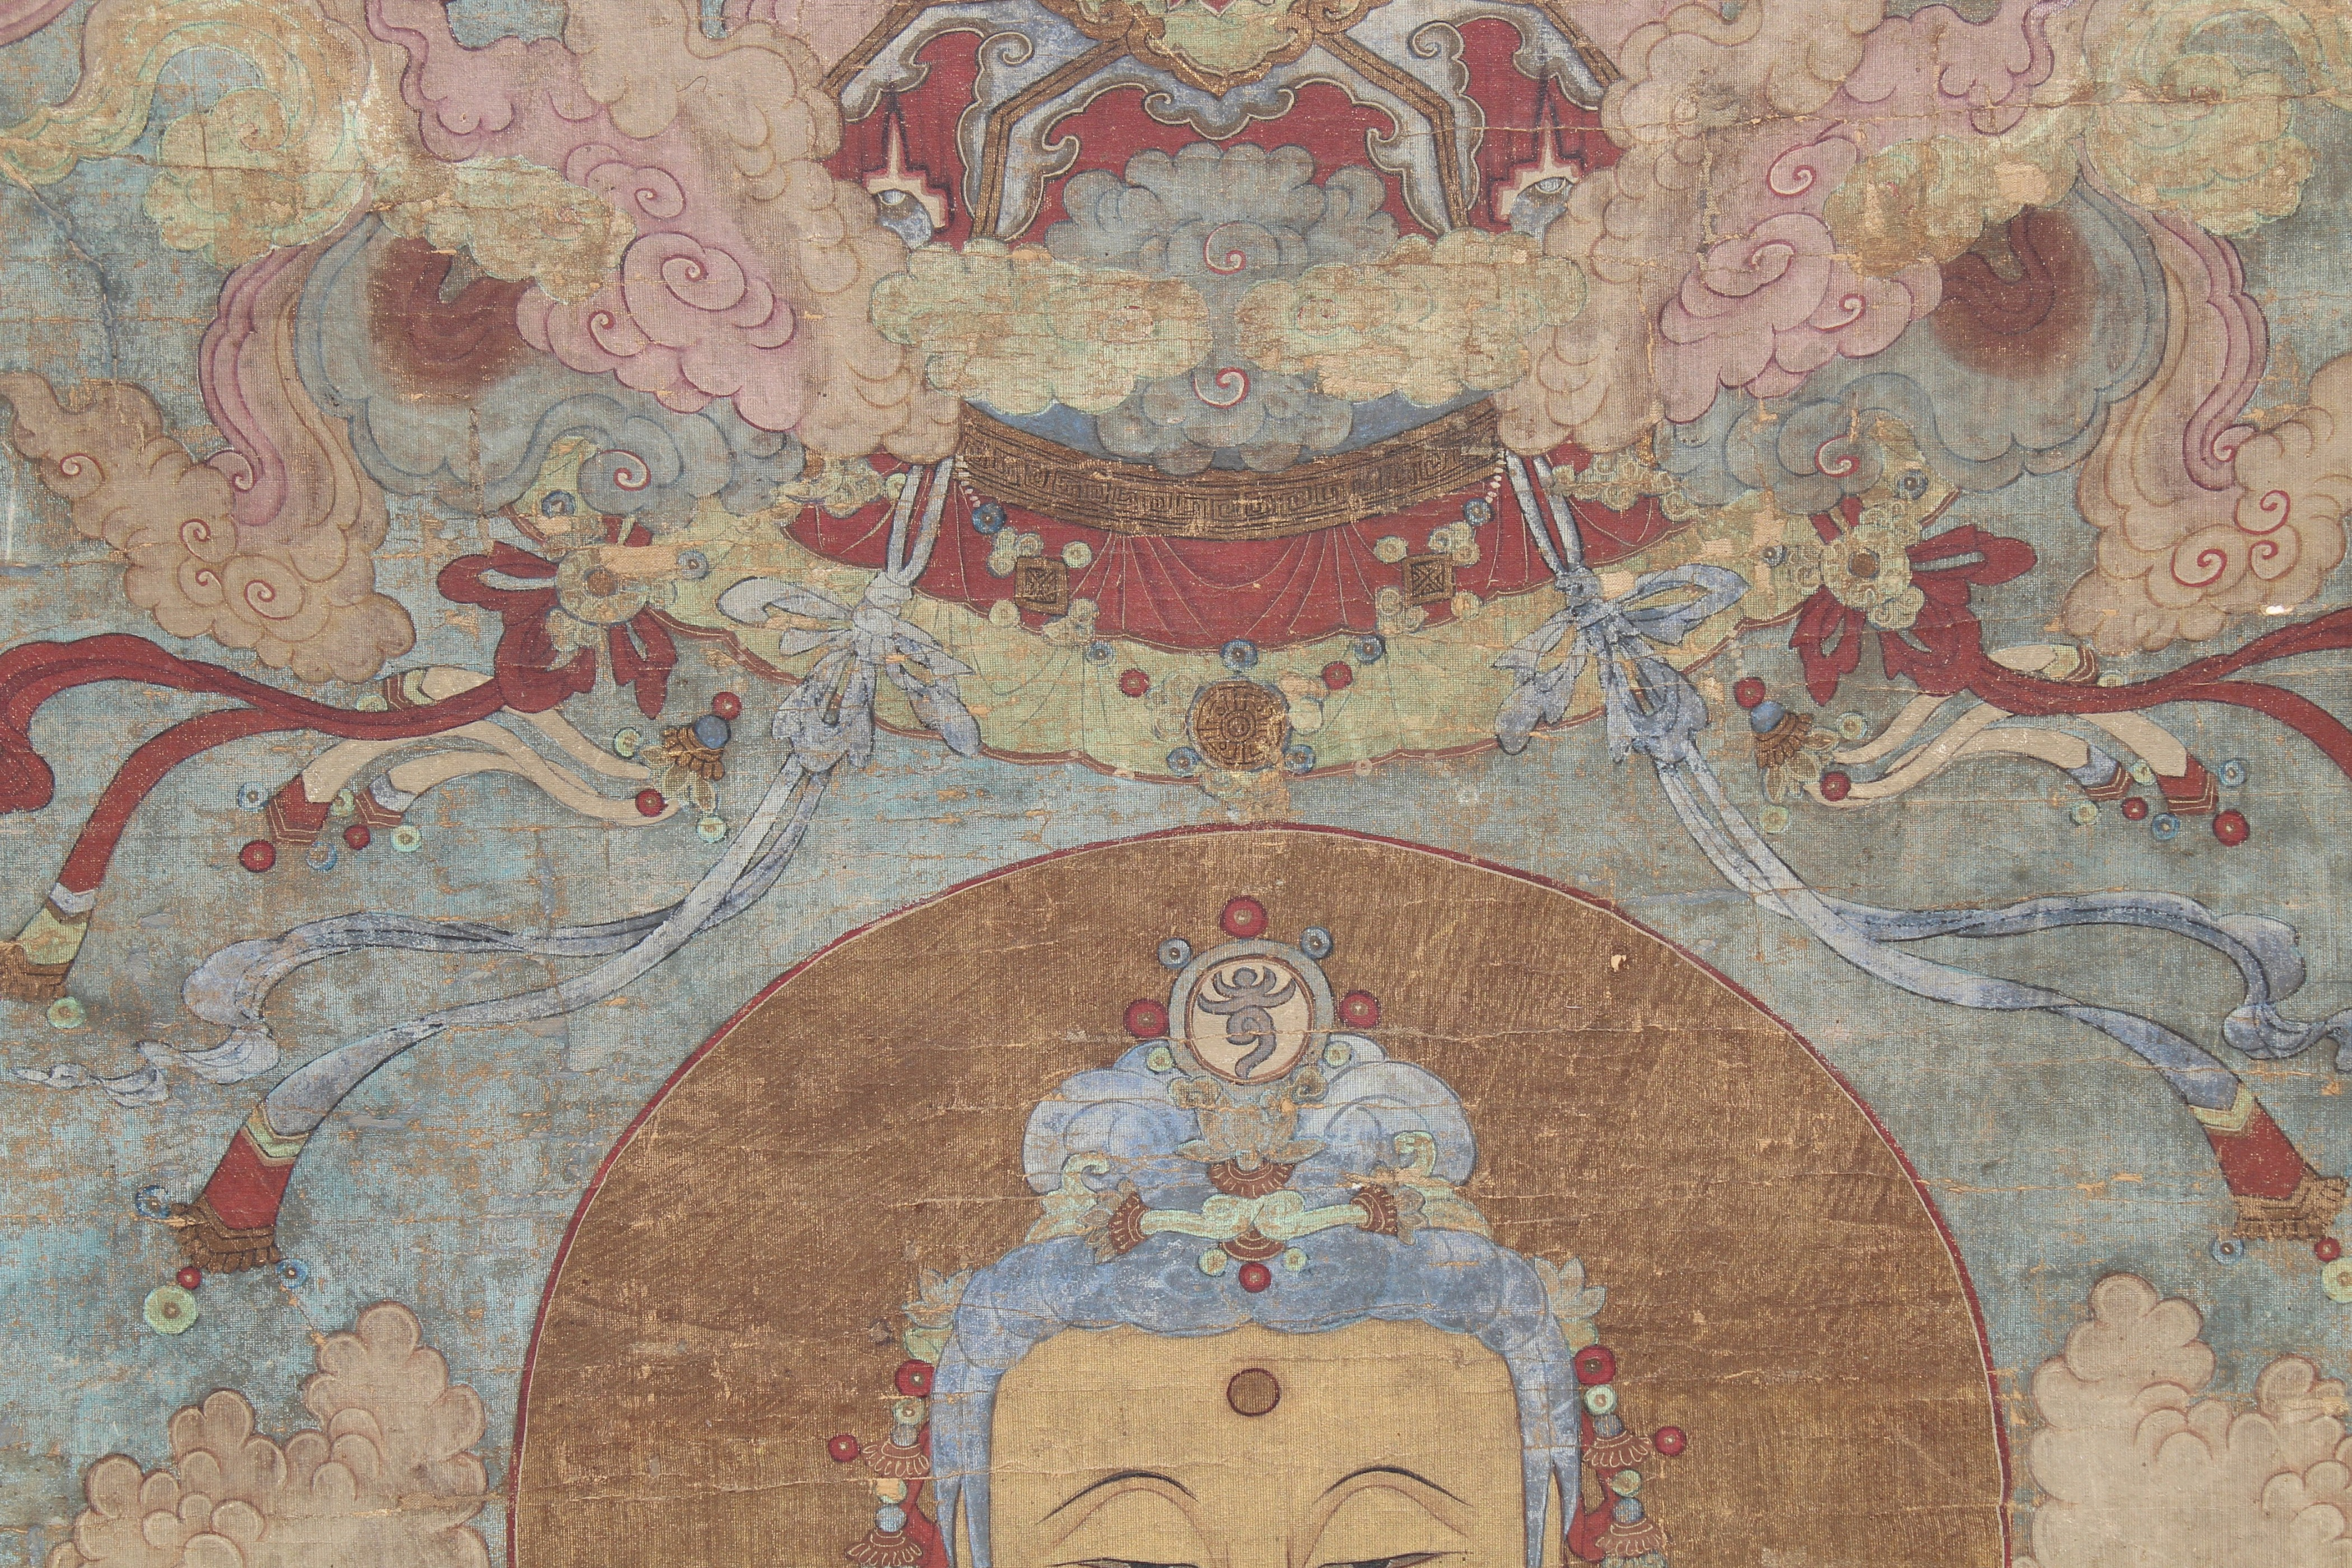 Lot 51 - Monumental 18th C. Tibetan Thangka